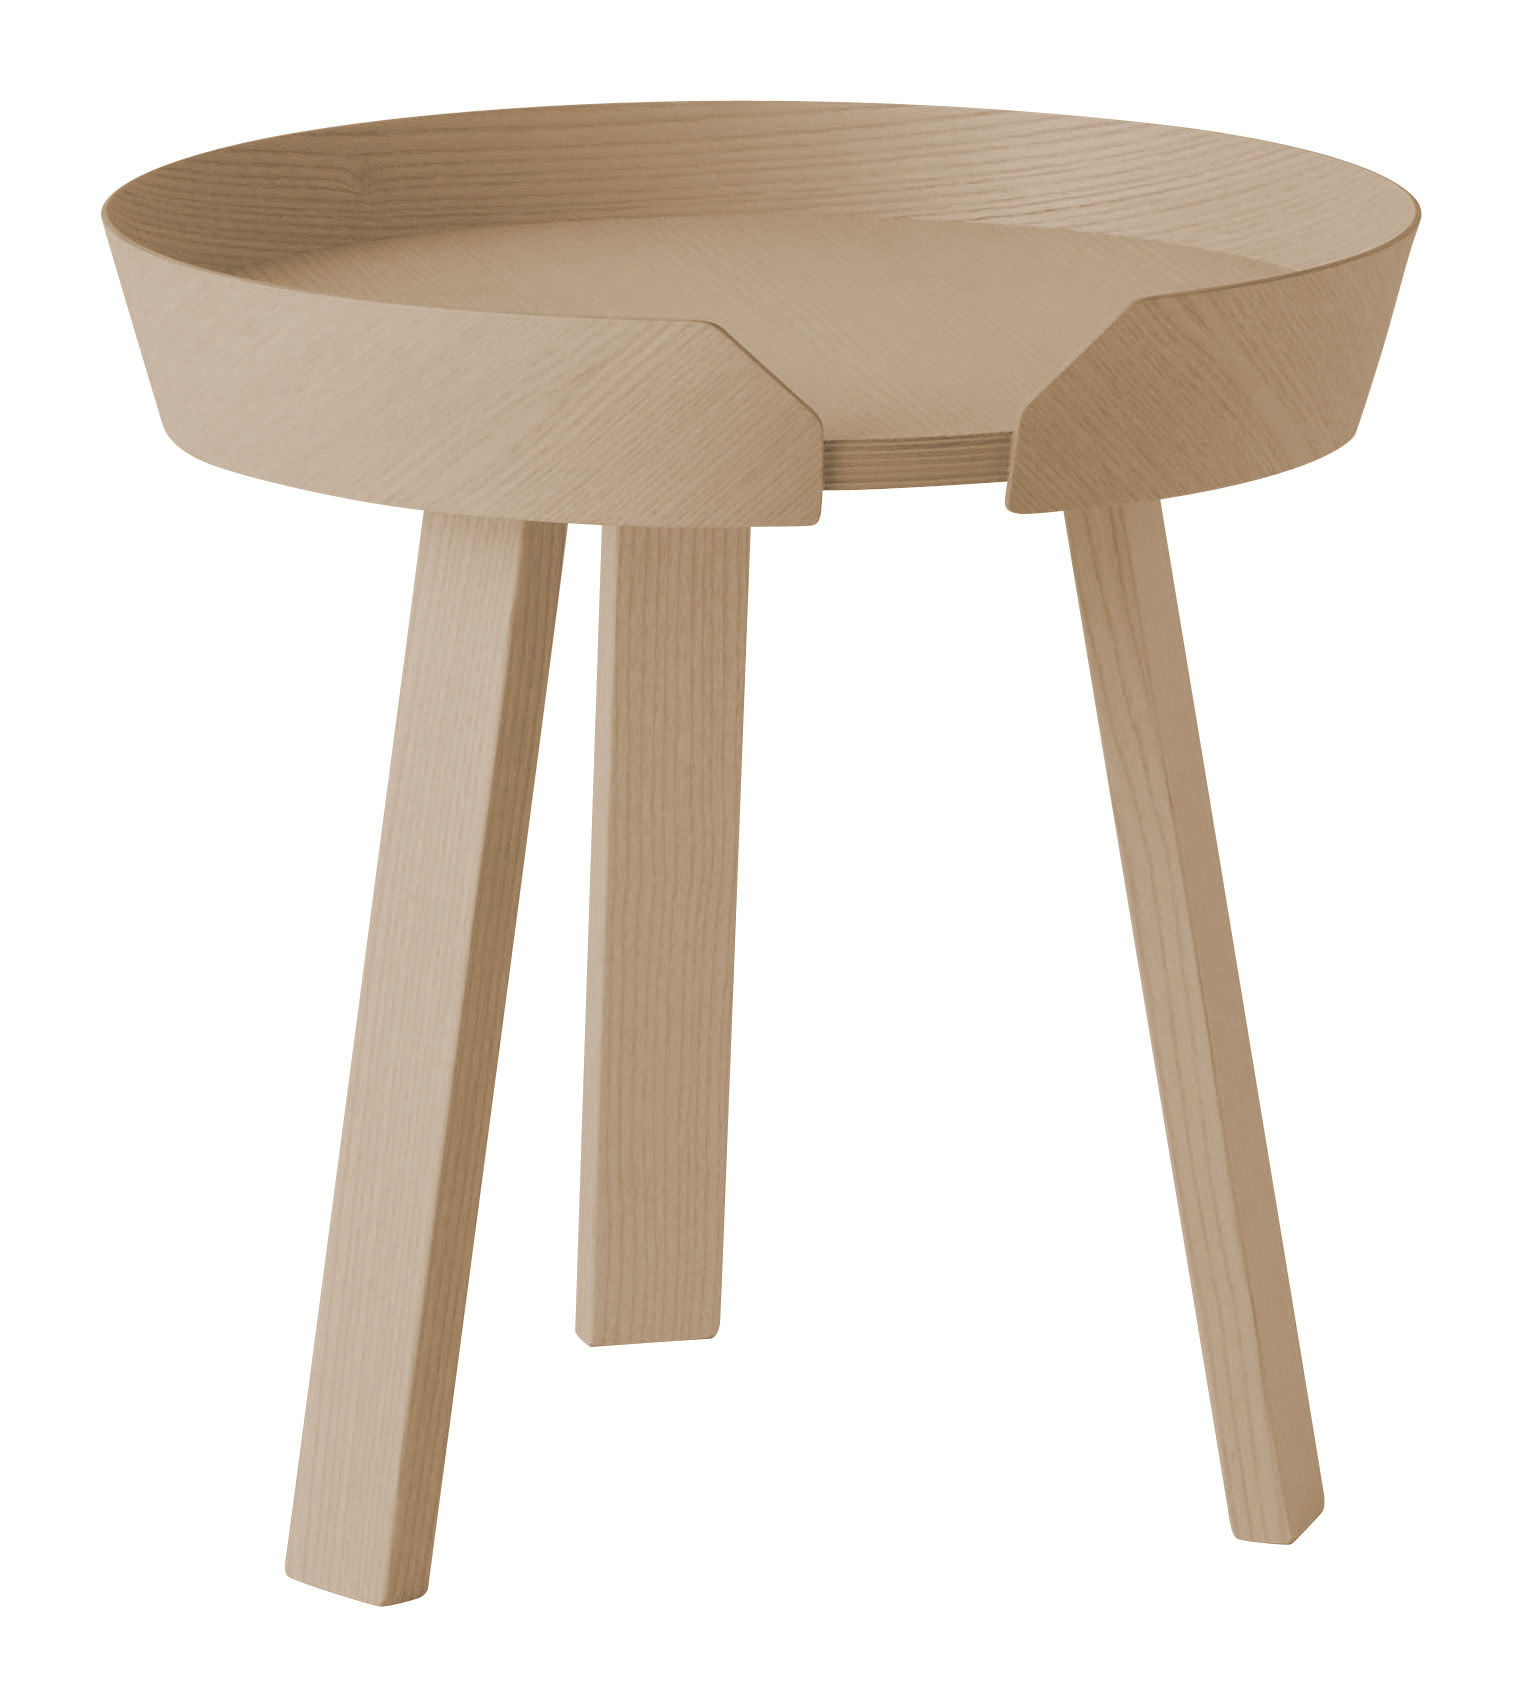 Tabke Basse Around Coffee Table Around Table Basse Small Ø 45 X H 46 Cm By Muuto